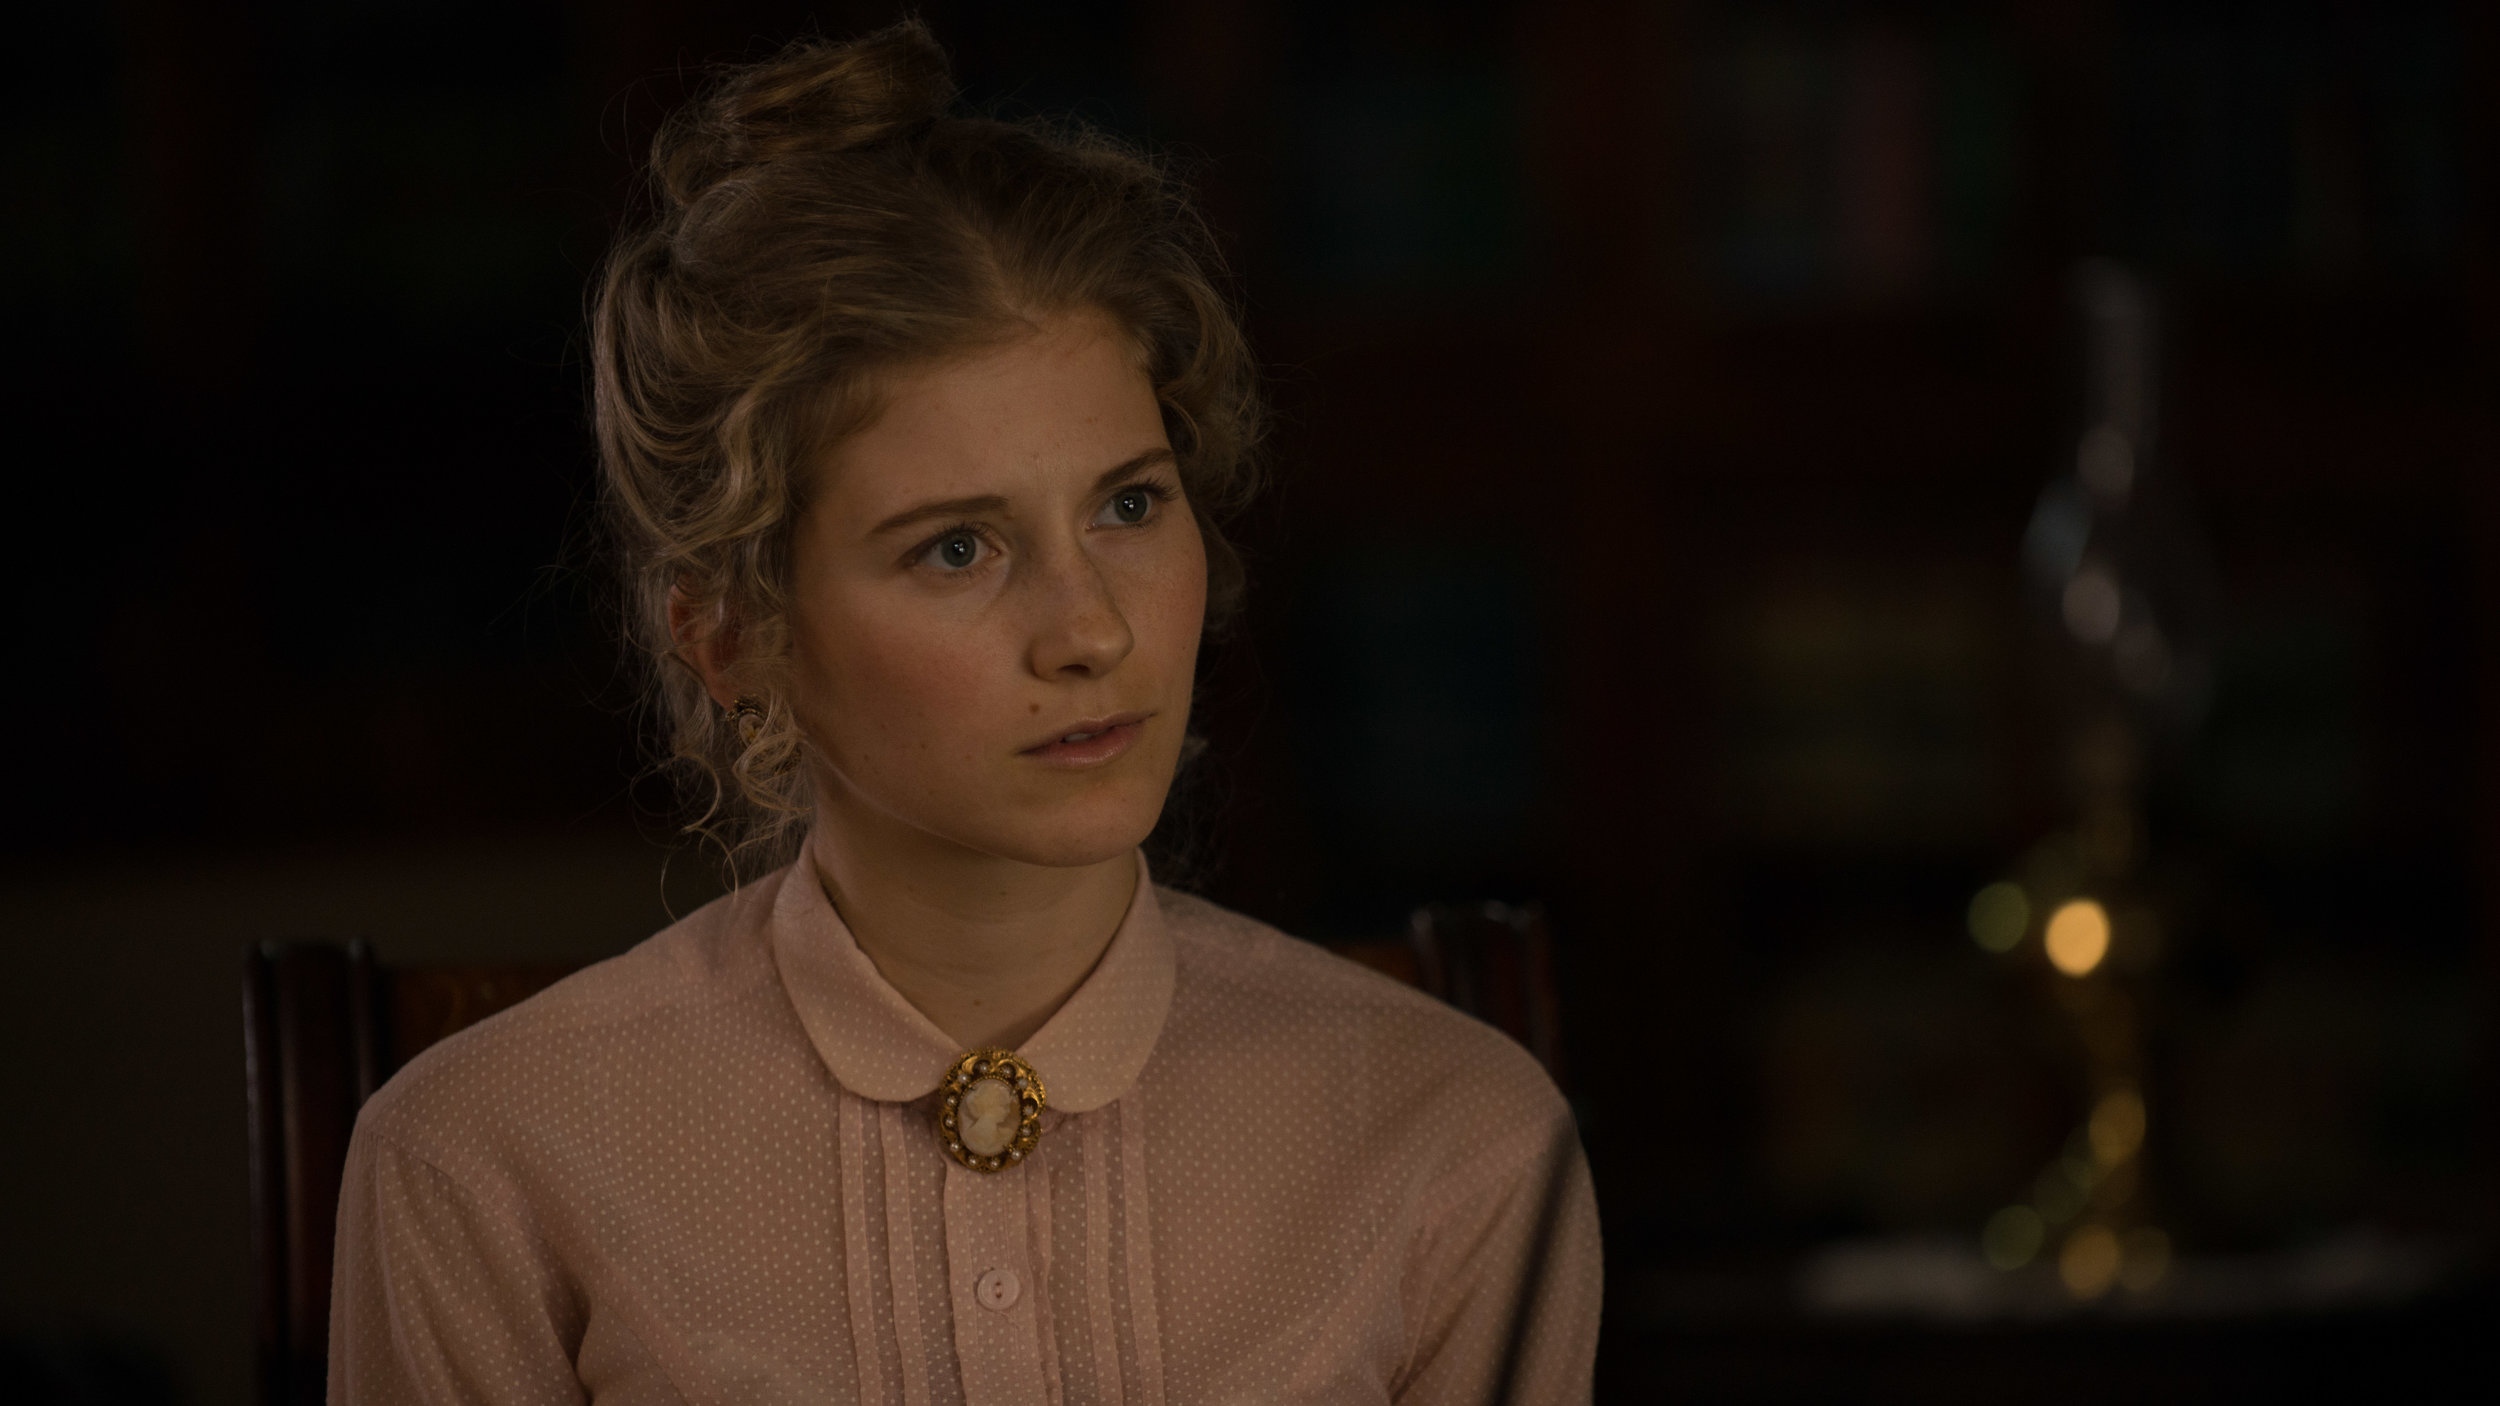 Allie Gallerani in The Institute (2017)